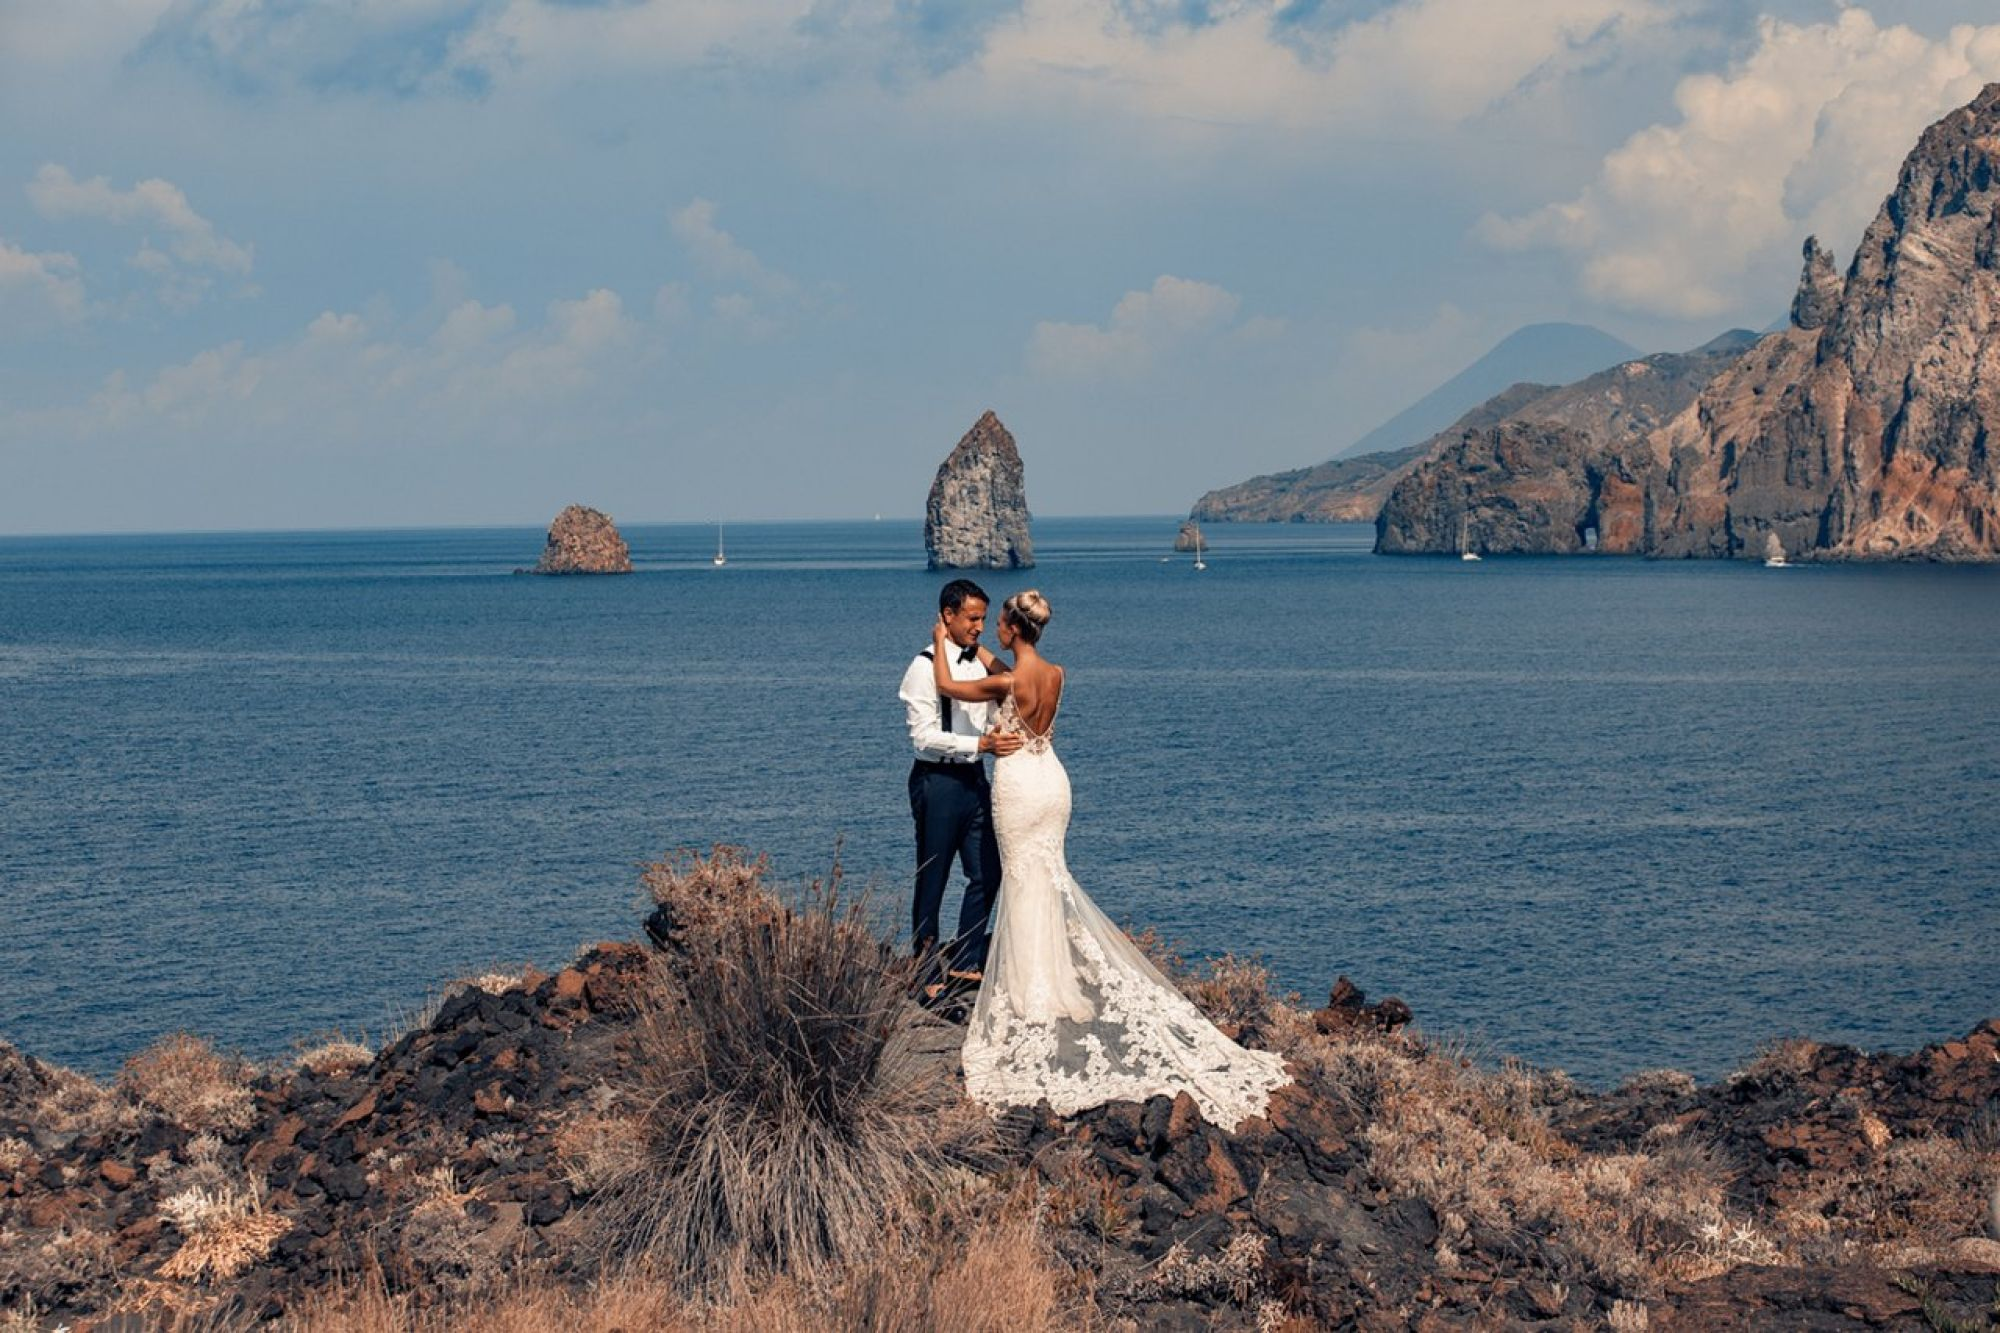 Click to enlarge image matrimonio-nikki-giuseppe-chiello-masterphotographer-sicily-wedding 11.jpg